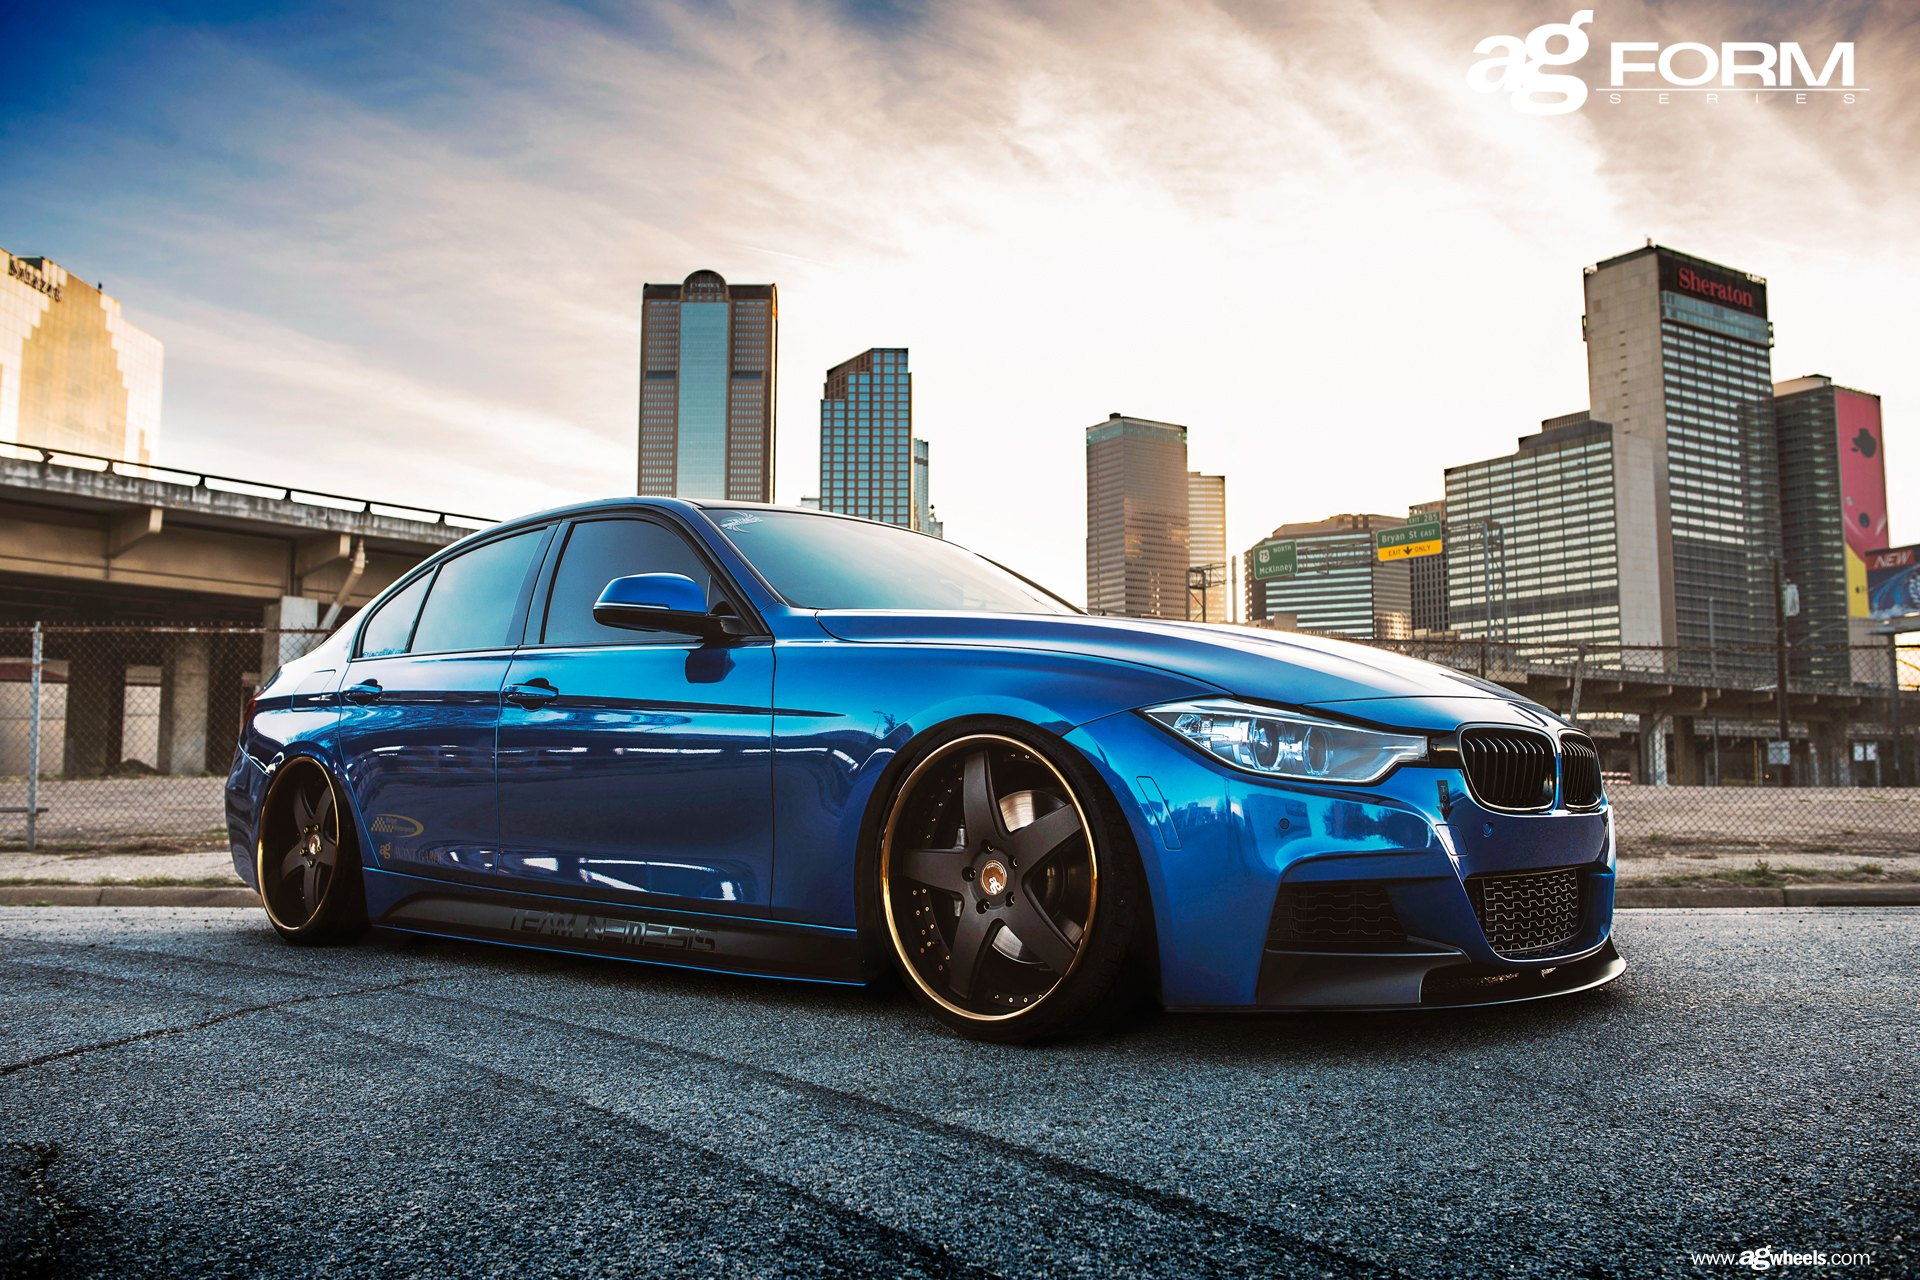 Bright Blue Bmw M3 F30 With A Proper Stance By Avant Garde